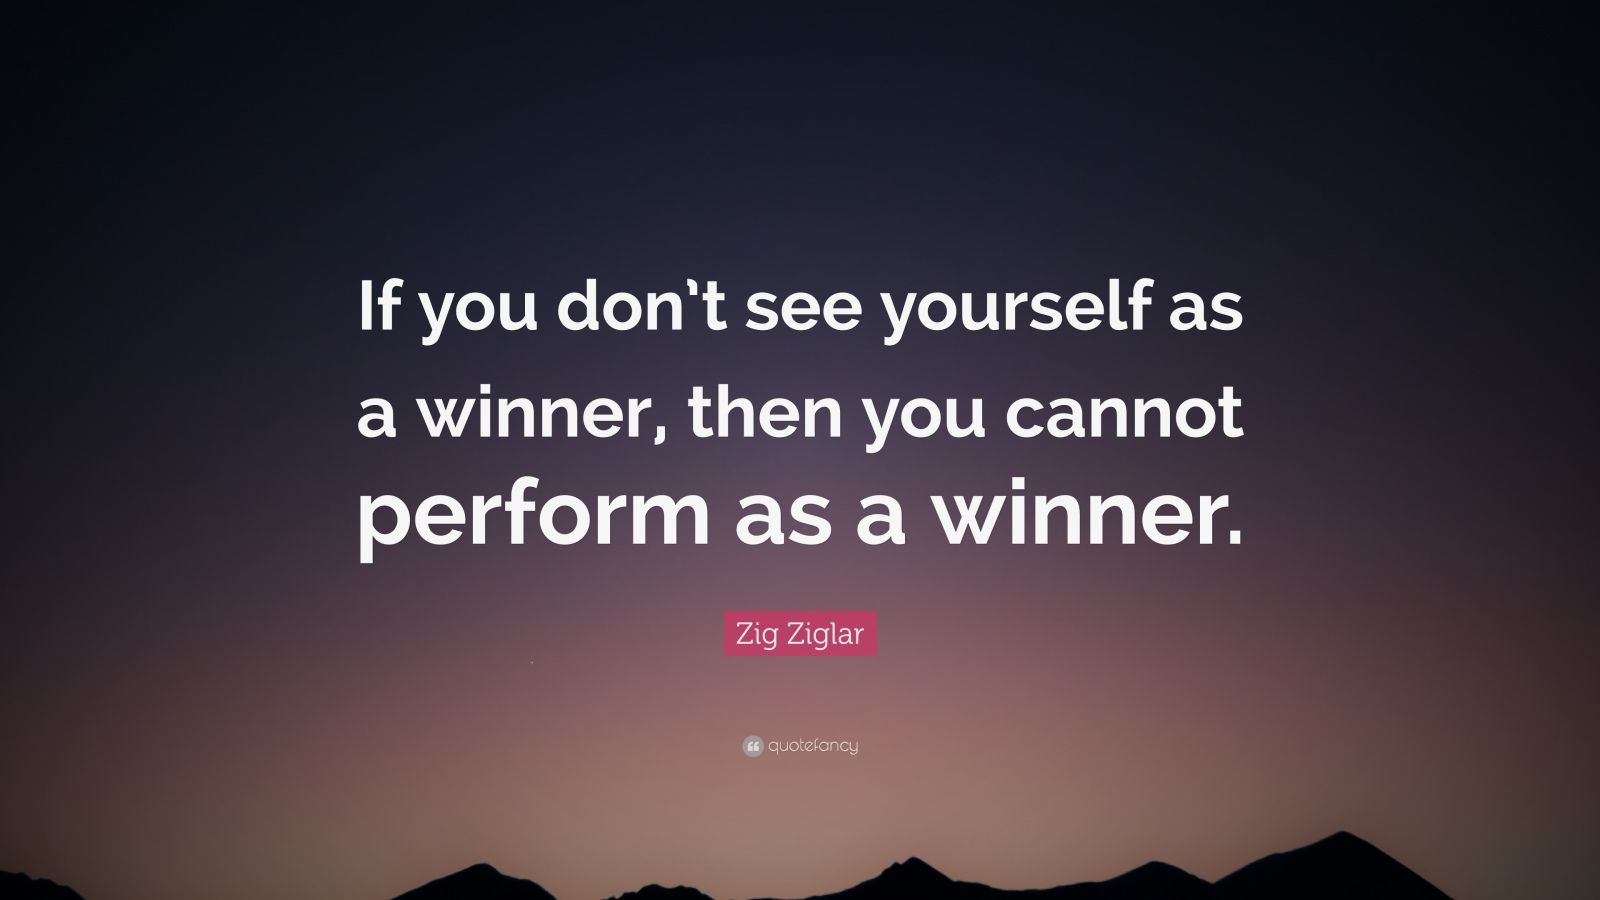 """Zig Ziglar Quote: """"If you don't see yourself as a winner, then you cannot perform as a winner."""""""